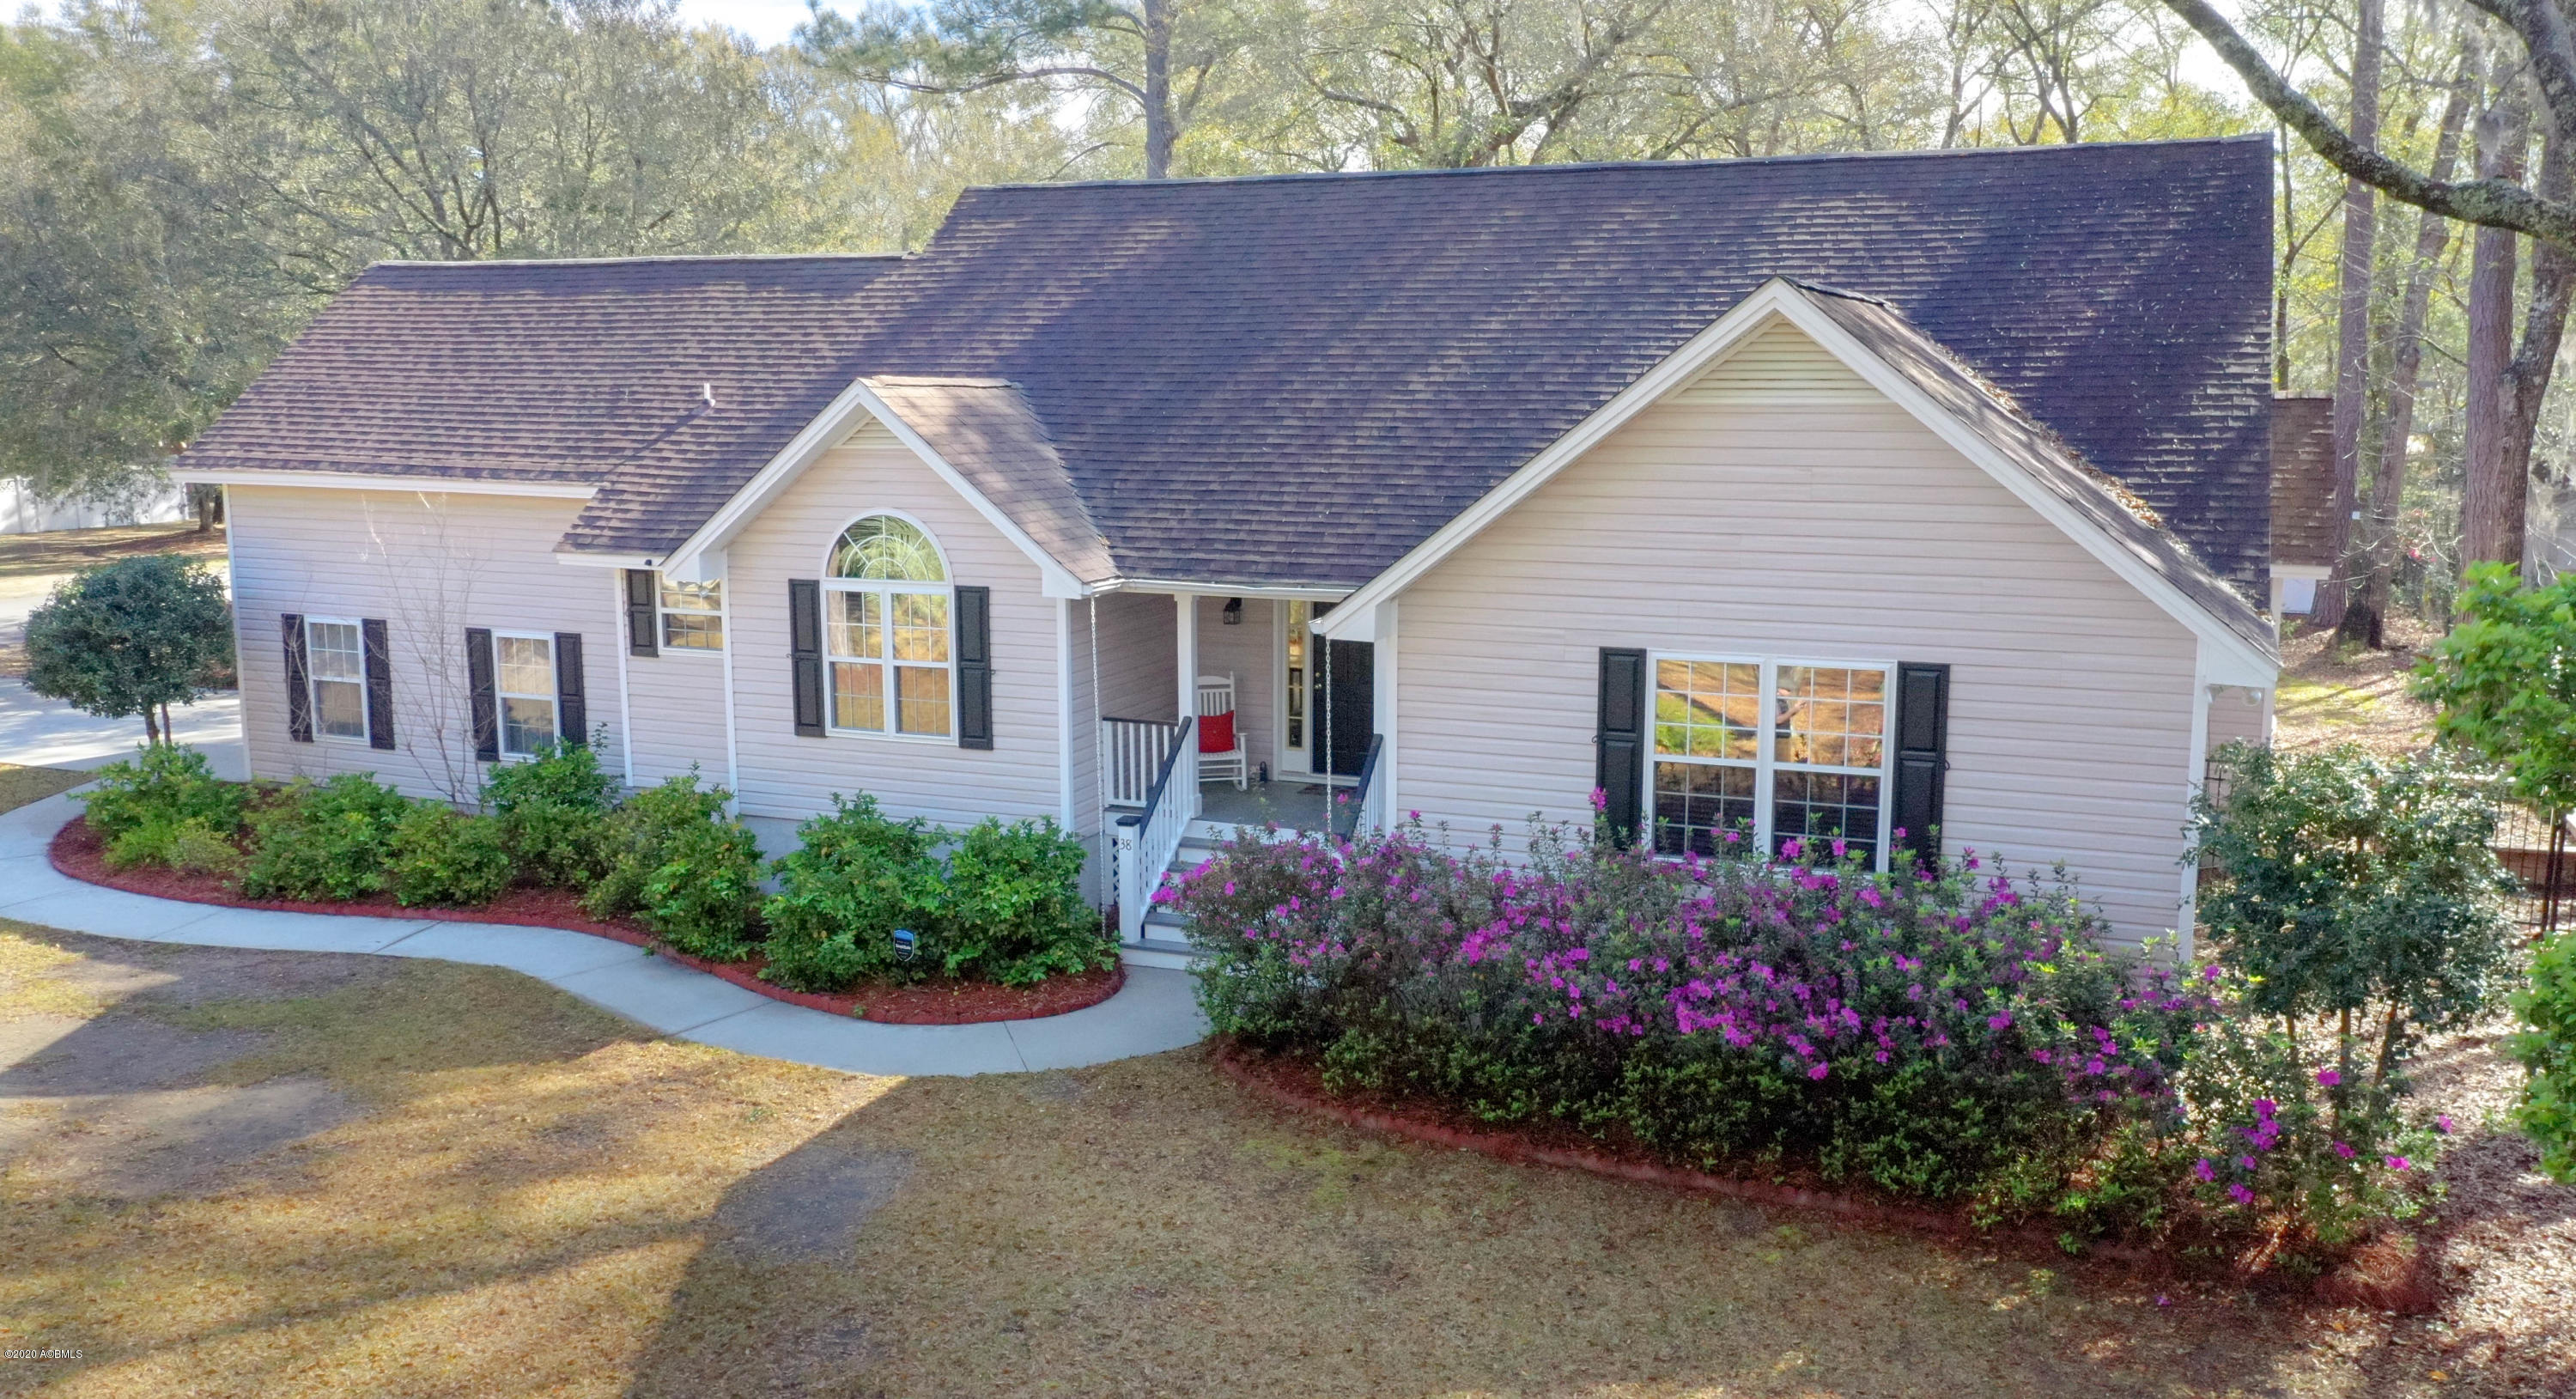 Photo of 38 Walling Grove Road, Beaufort, SC 29907